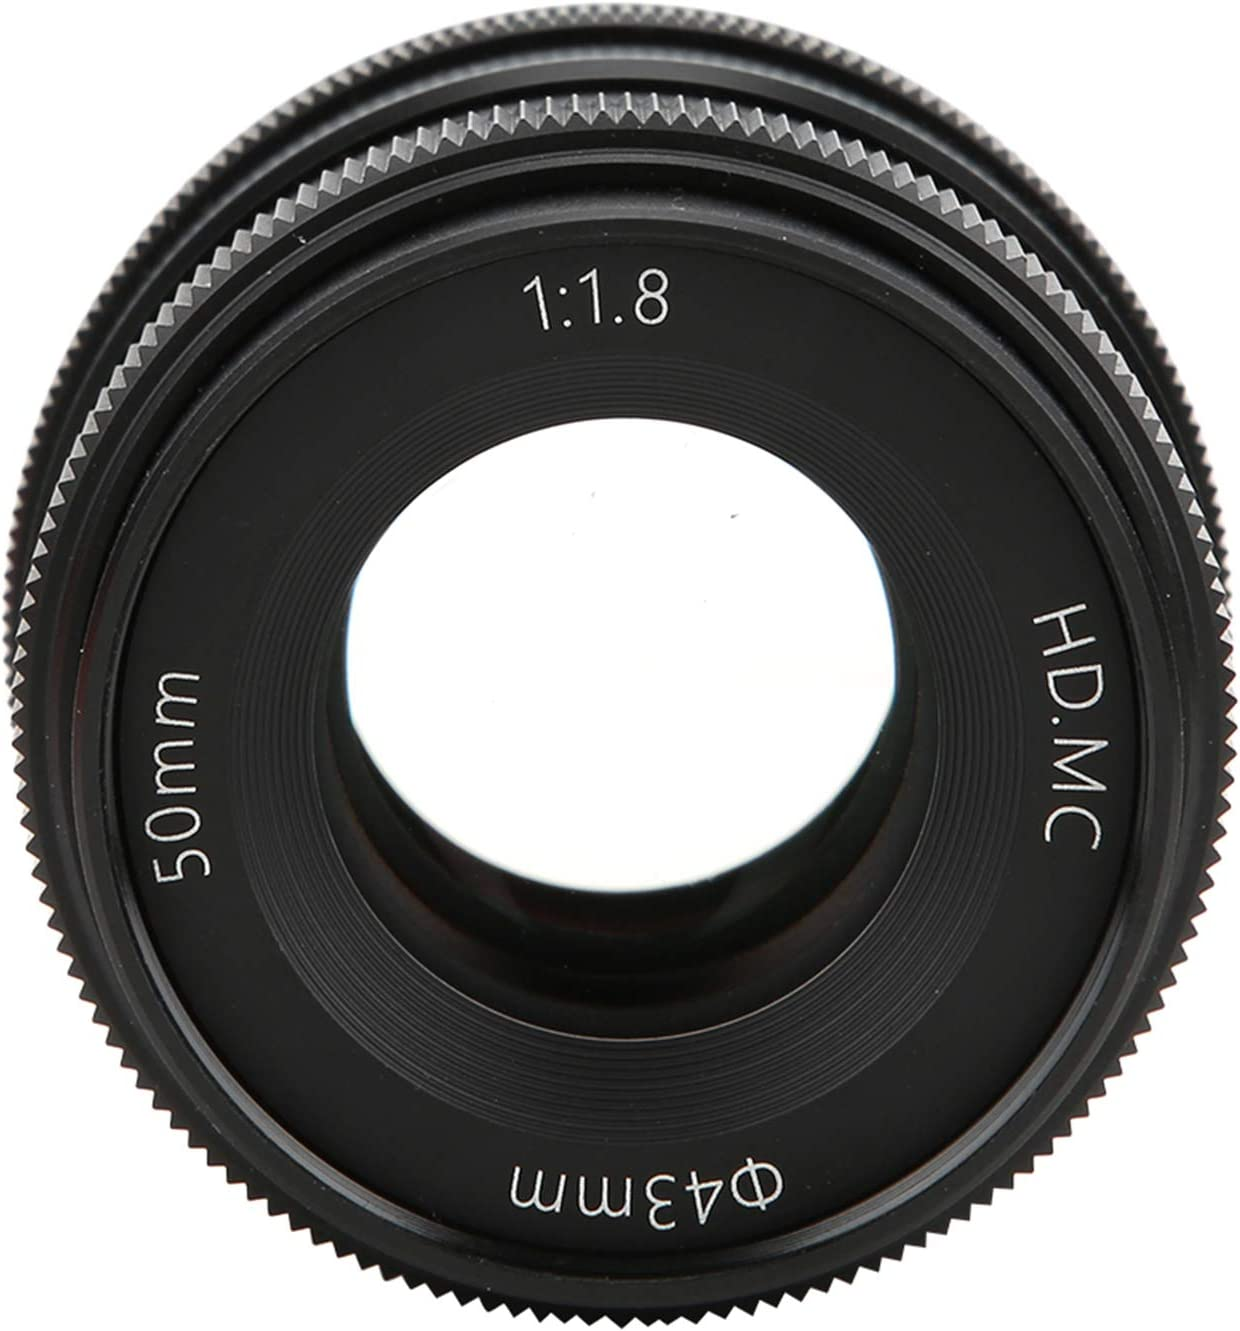 Max 78% OFF BTIHCEUOT Fixed Lens Camera for SEAL limited product Nik Len Mirrorless